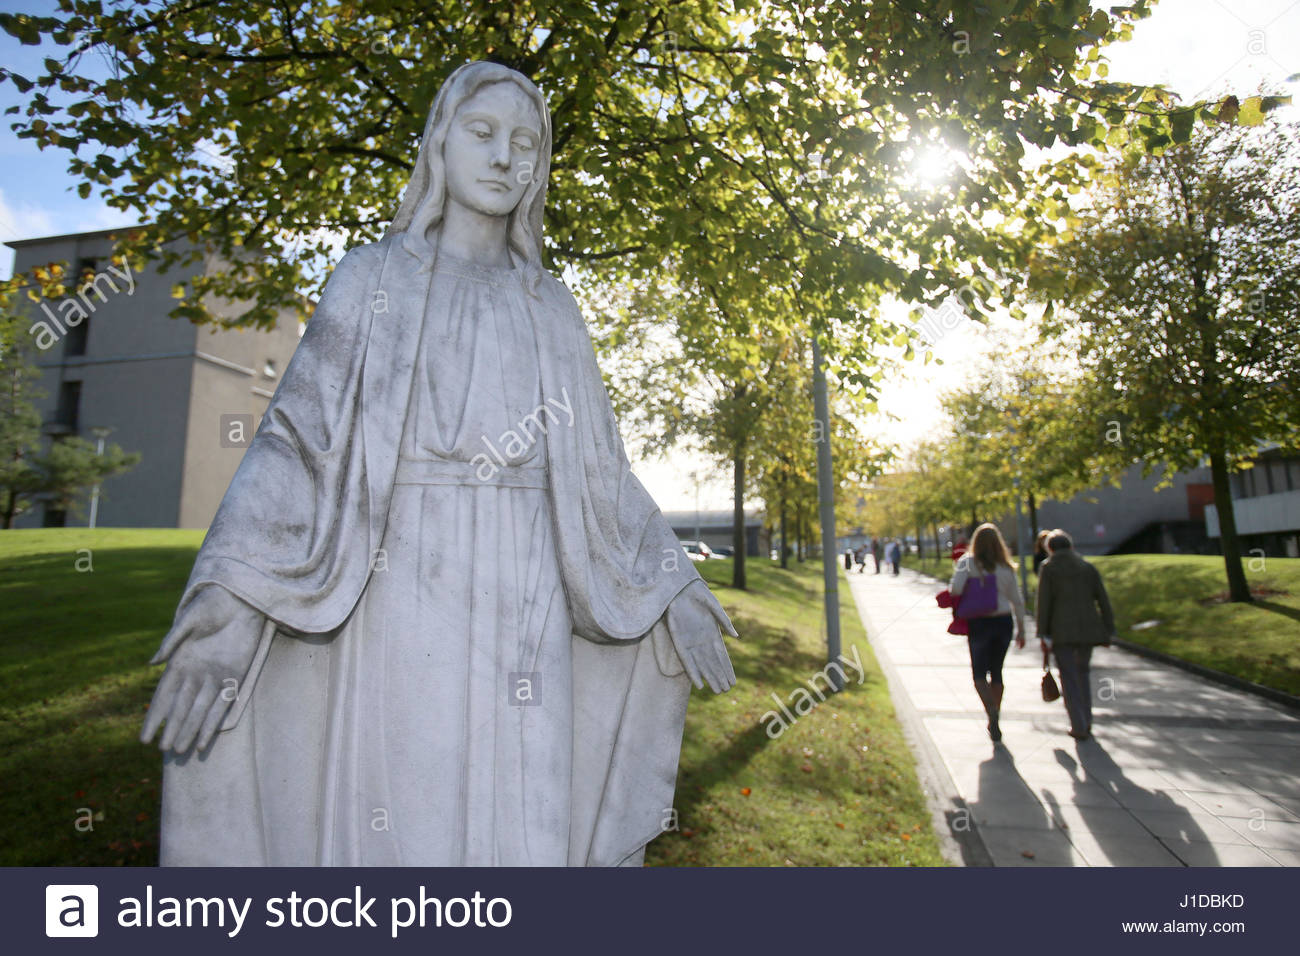 File photo dated 17/10/2013 of St Vincents University Hospital in South Dublin, as one of the country's most - Stock Image